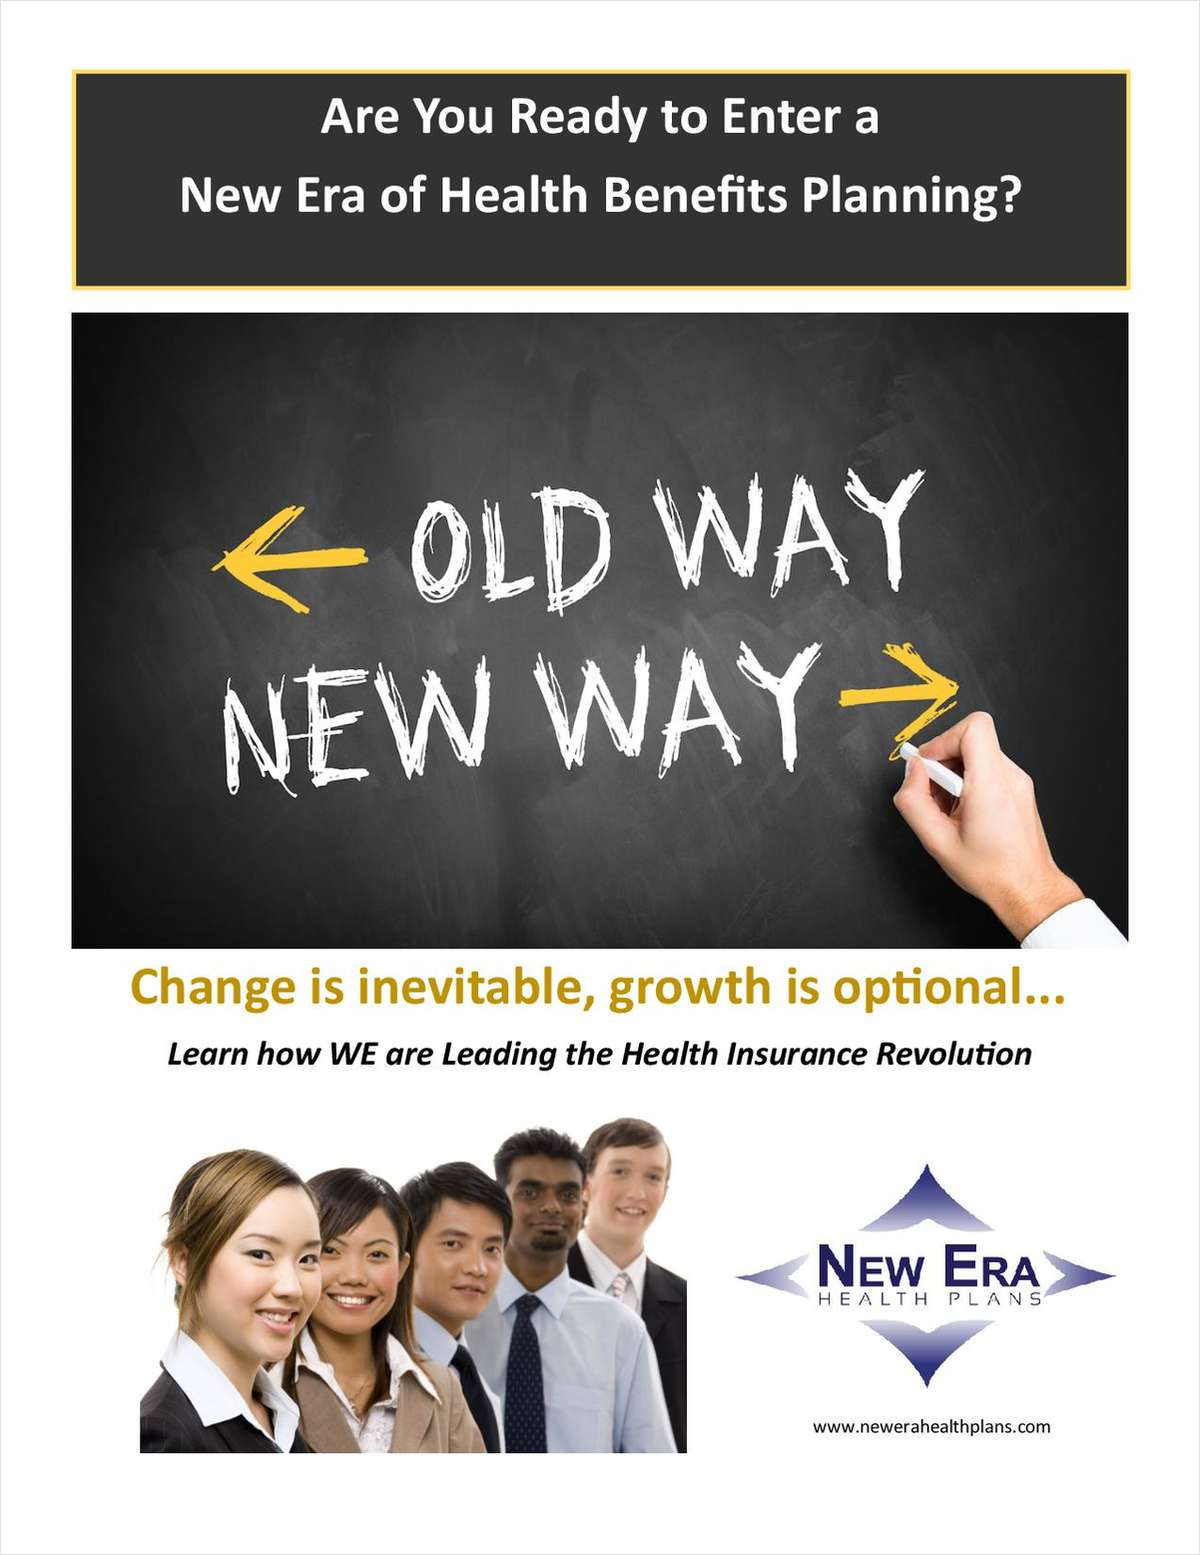 Are You Ready to Enter a New Era of Health Benefits Planning?